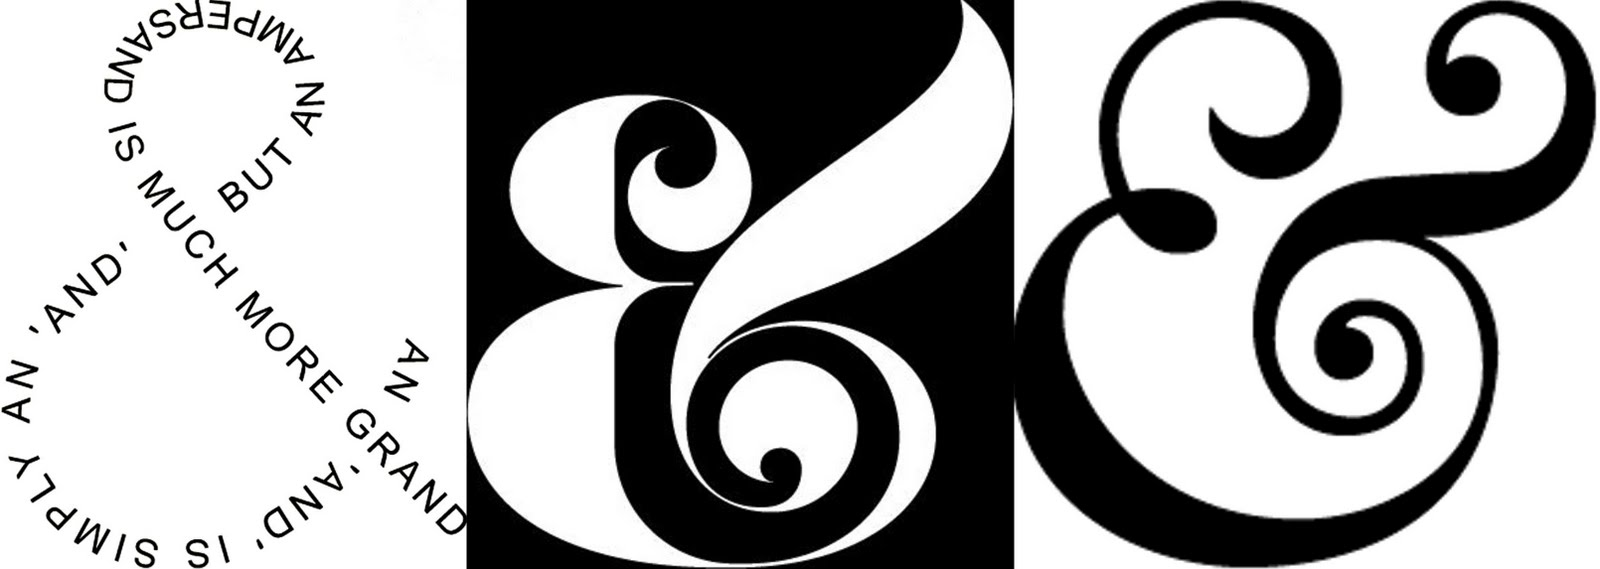 39 Meaning Of Ampersand Symbol Symbol Of Ampersand Meaning